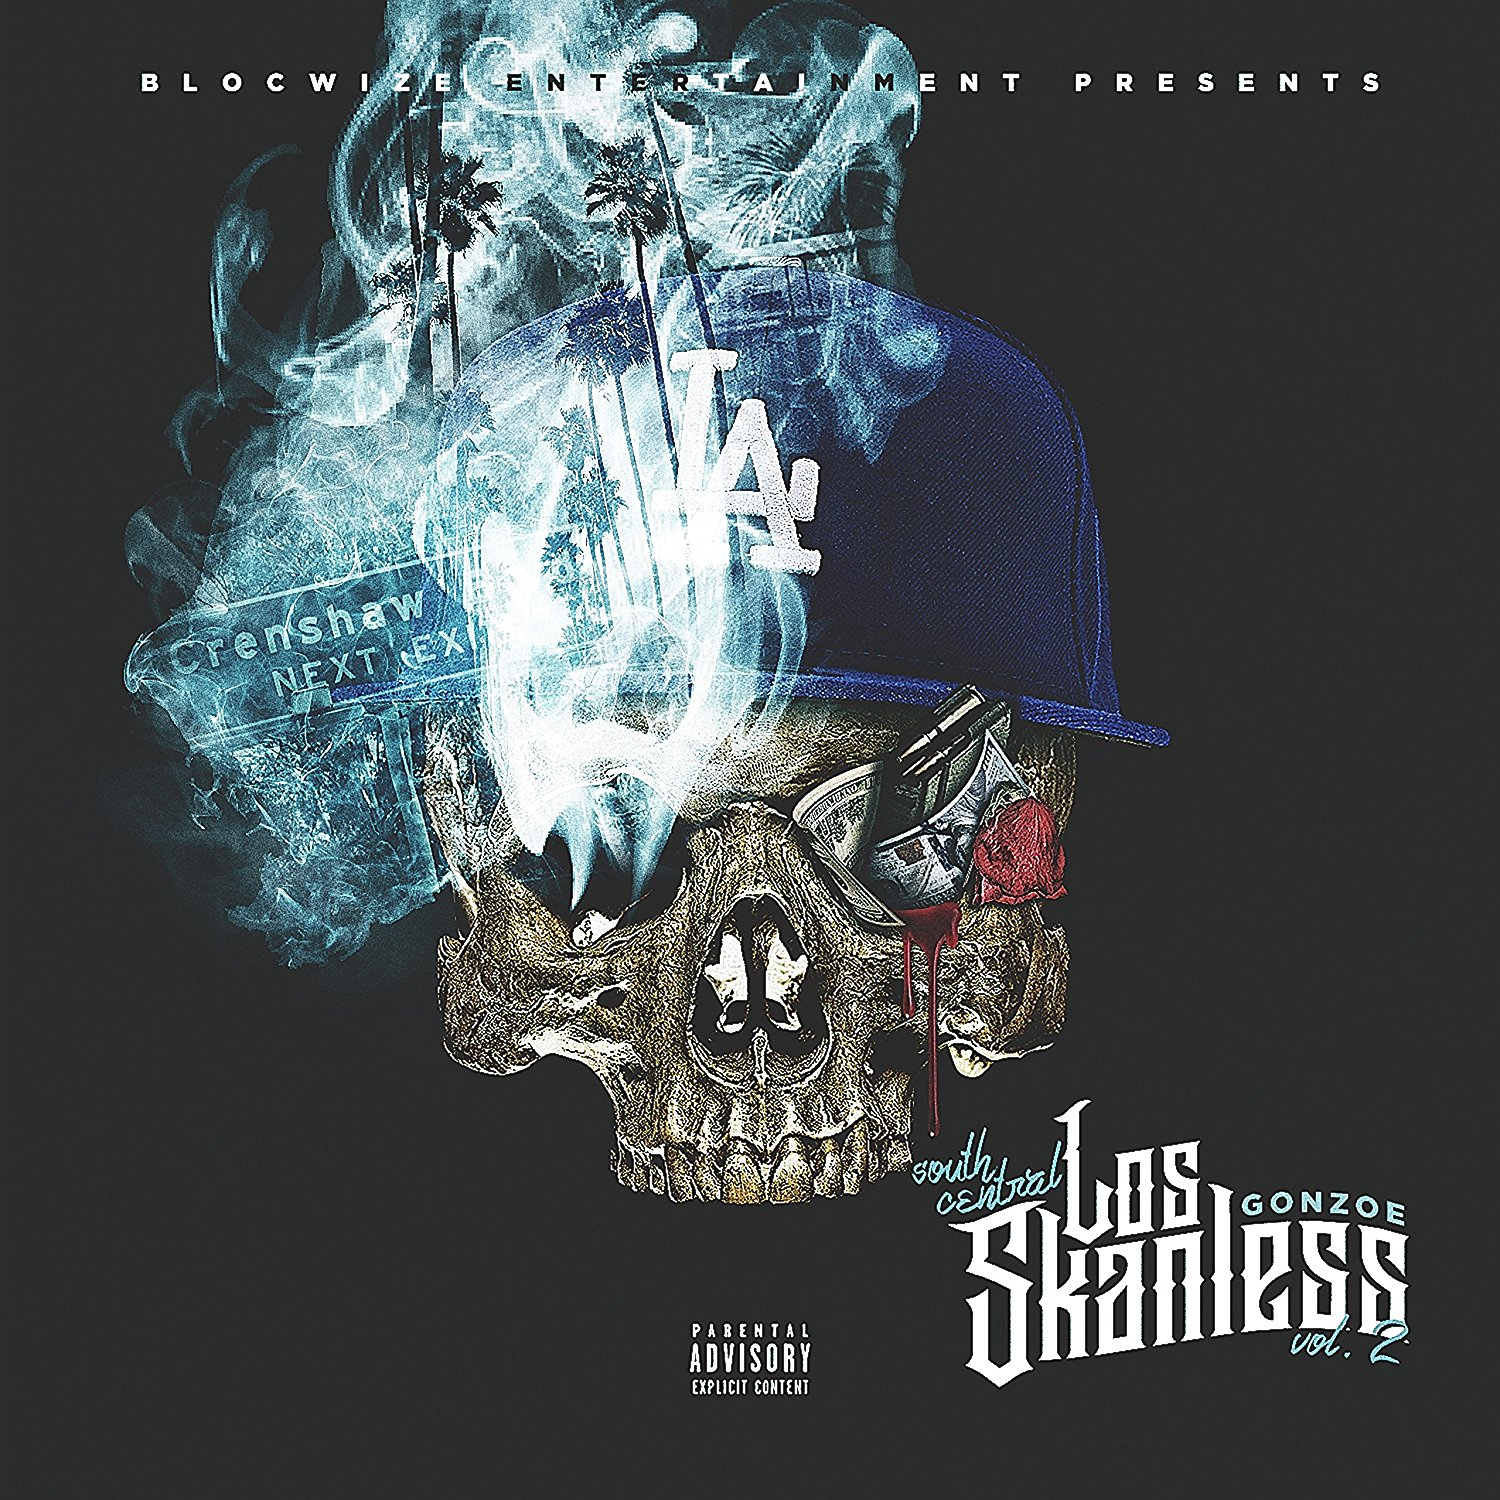 http://rap.3dn.ru/00000c/00-Gonzoe-South_Central_Los_Skanless_Vol-2-front.jpg